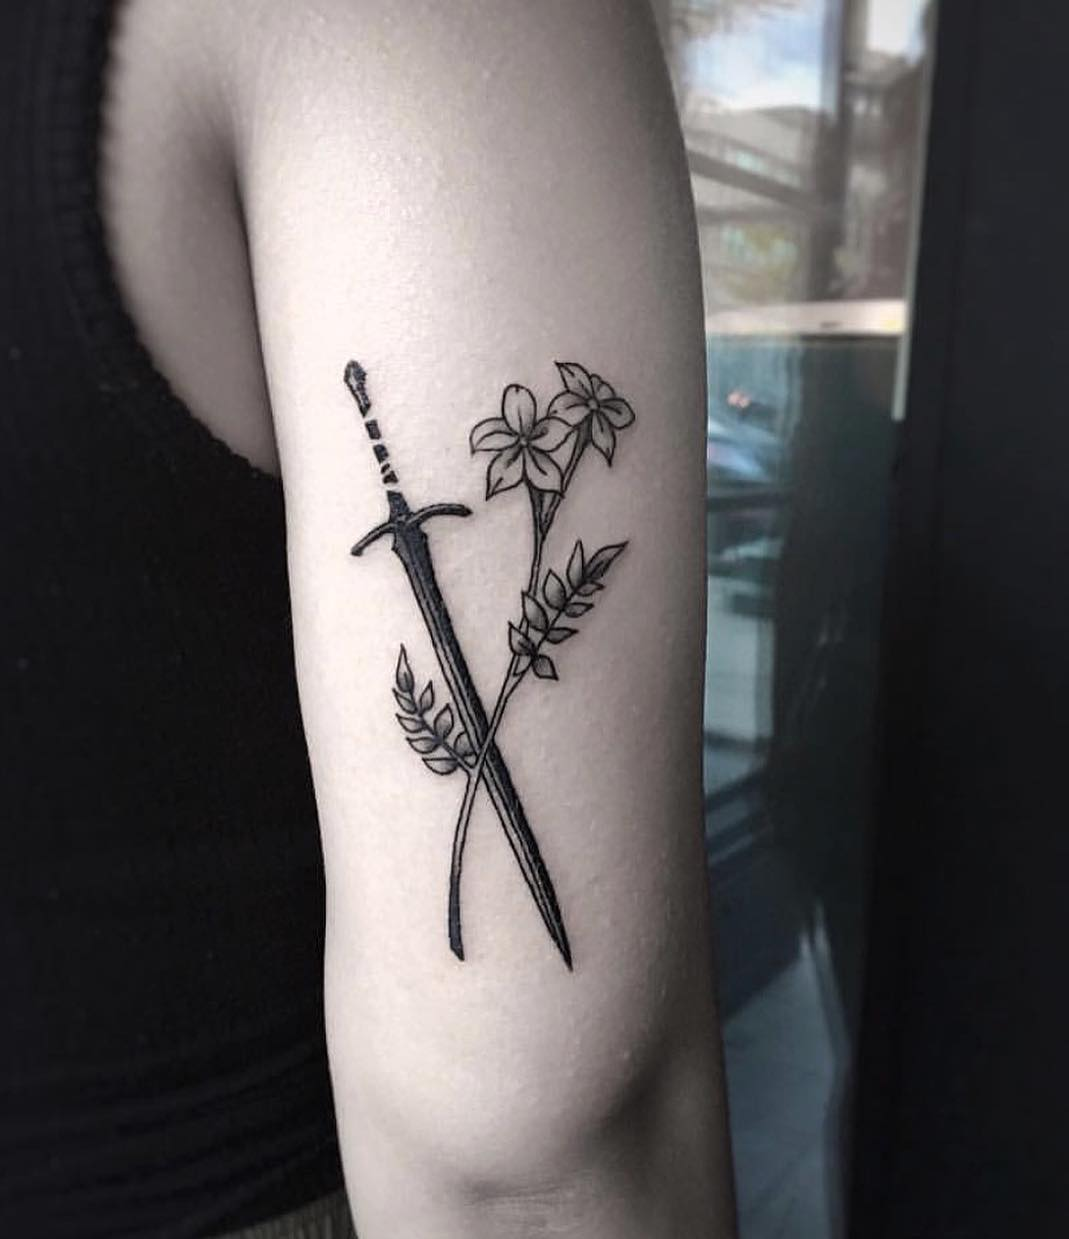 Sword and flower tattoo on the arm